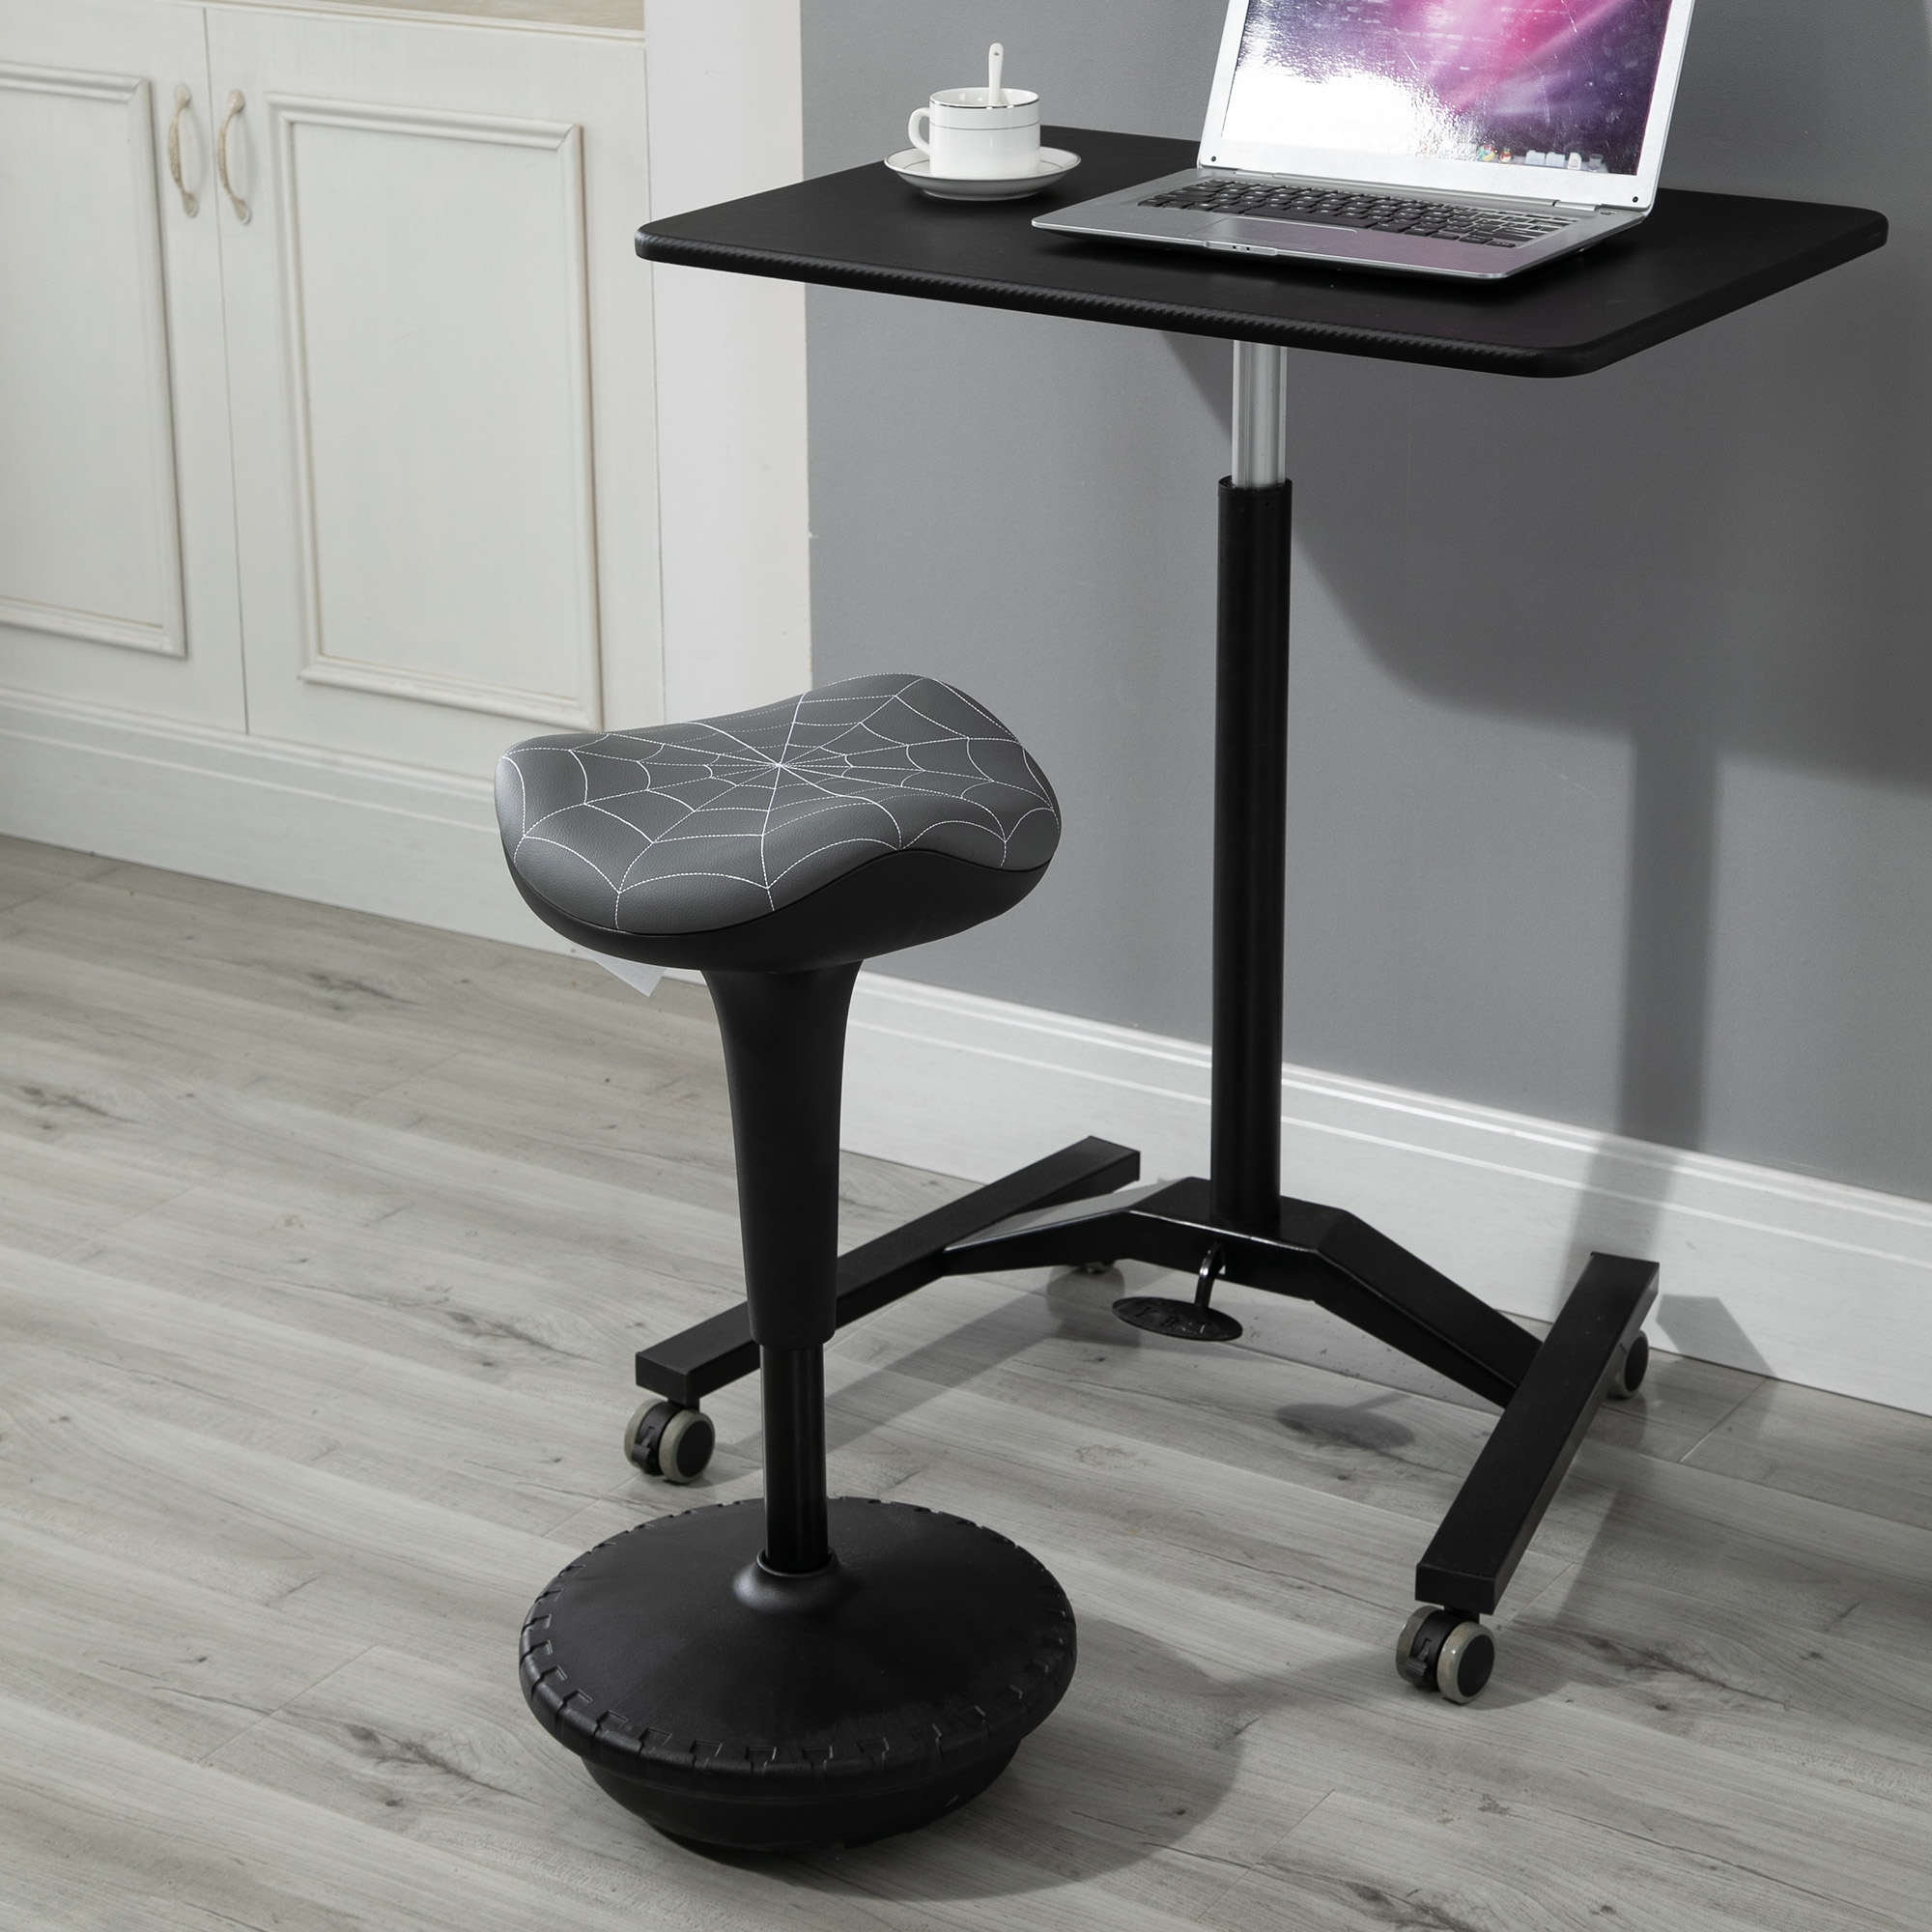 Image of: Vinsetto Lift Wobble Stool Standing Desk Chair With A 360 Swivel Tilt Grey 842525199049 Ebay